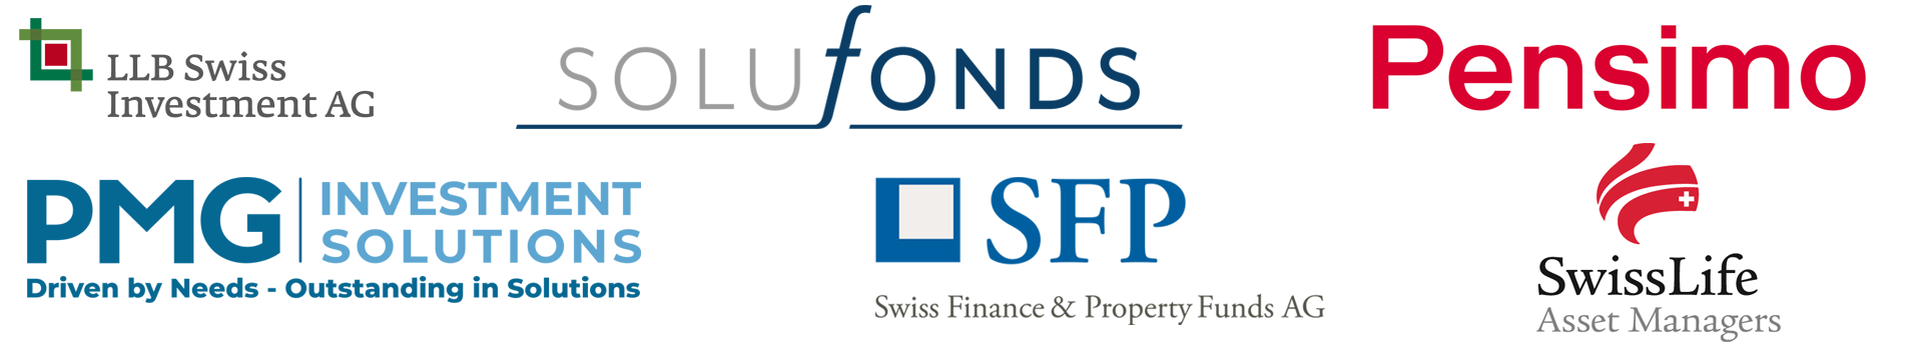 LLB Swiss Investment AG, Solufonds, Pensimo, PMG Investment Solutions, Swiss Finance & Property Funds AG, Swiss Life Asset Managers